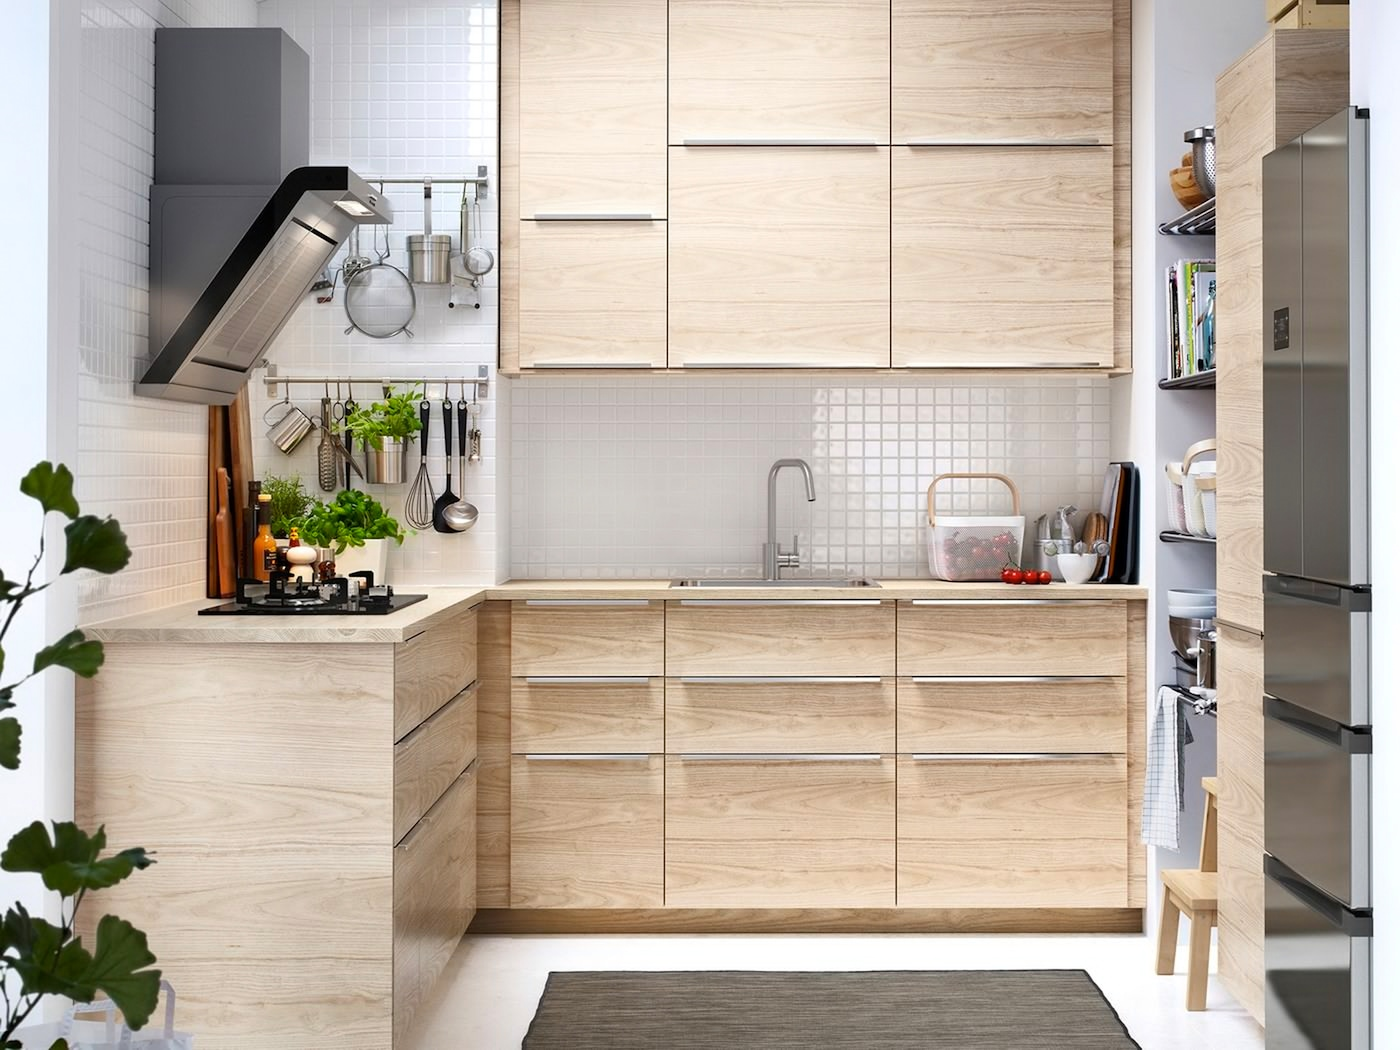 latest ikea small kitchen designs | Kitchen Design - Kitchen Planner - IKEA